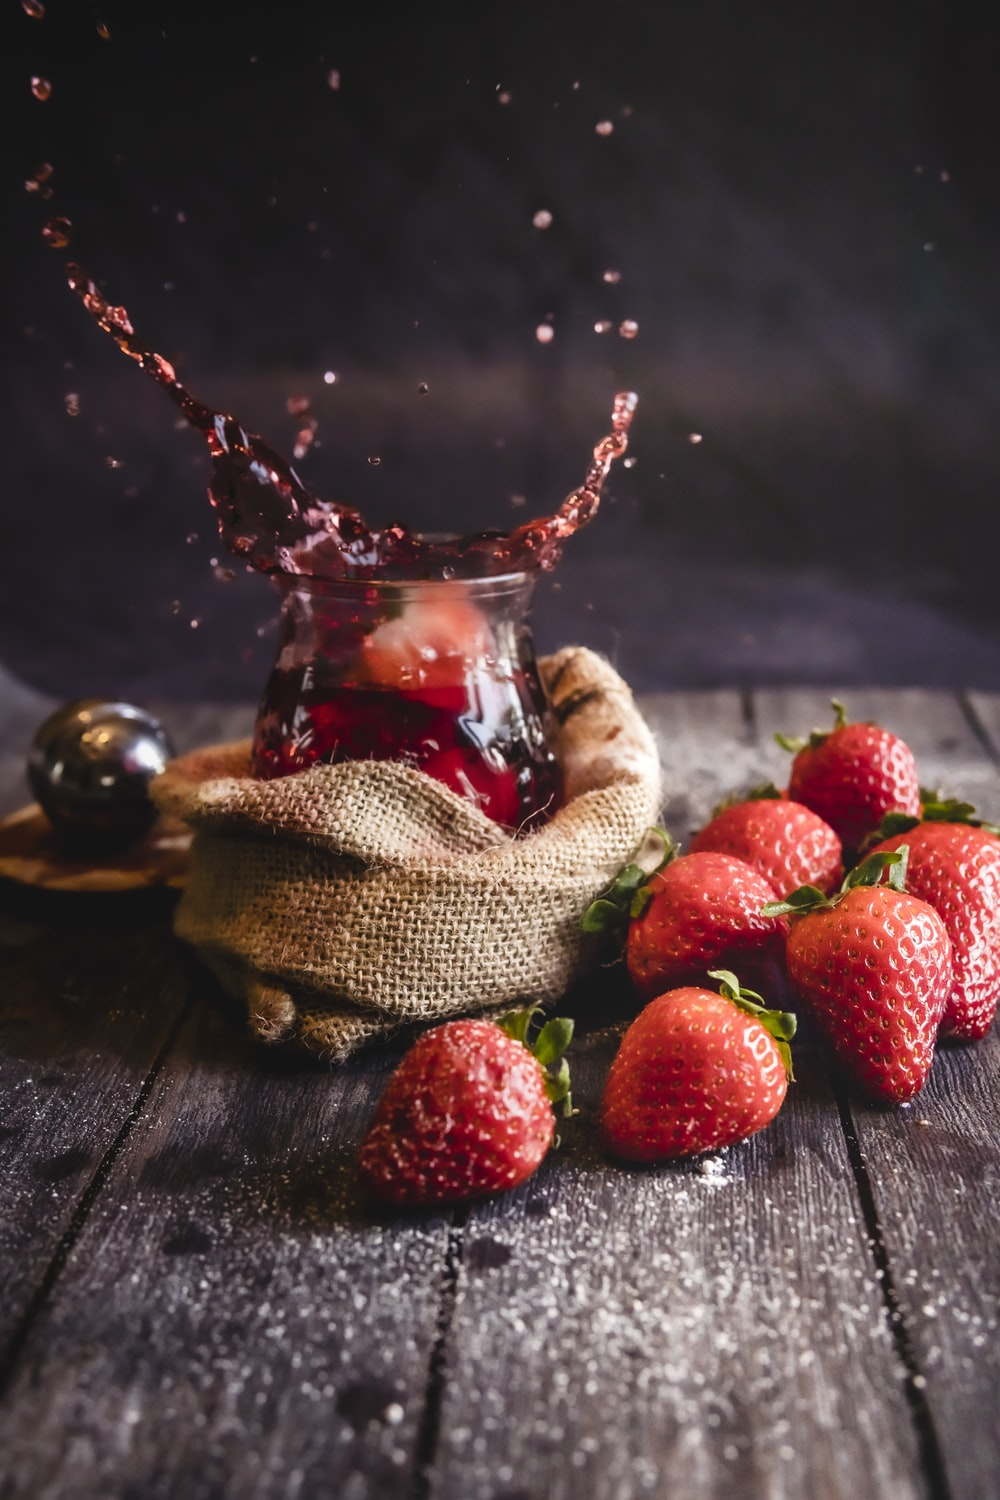 strawberries on brown wooden table